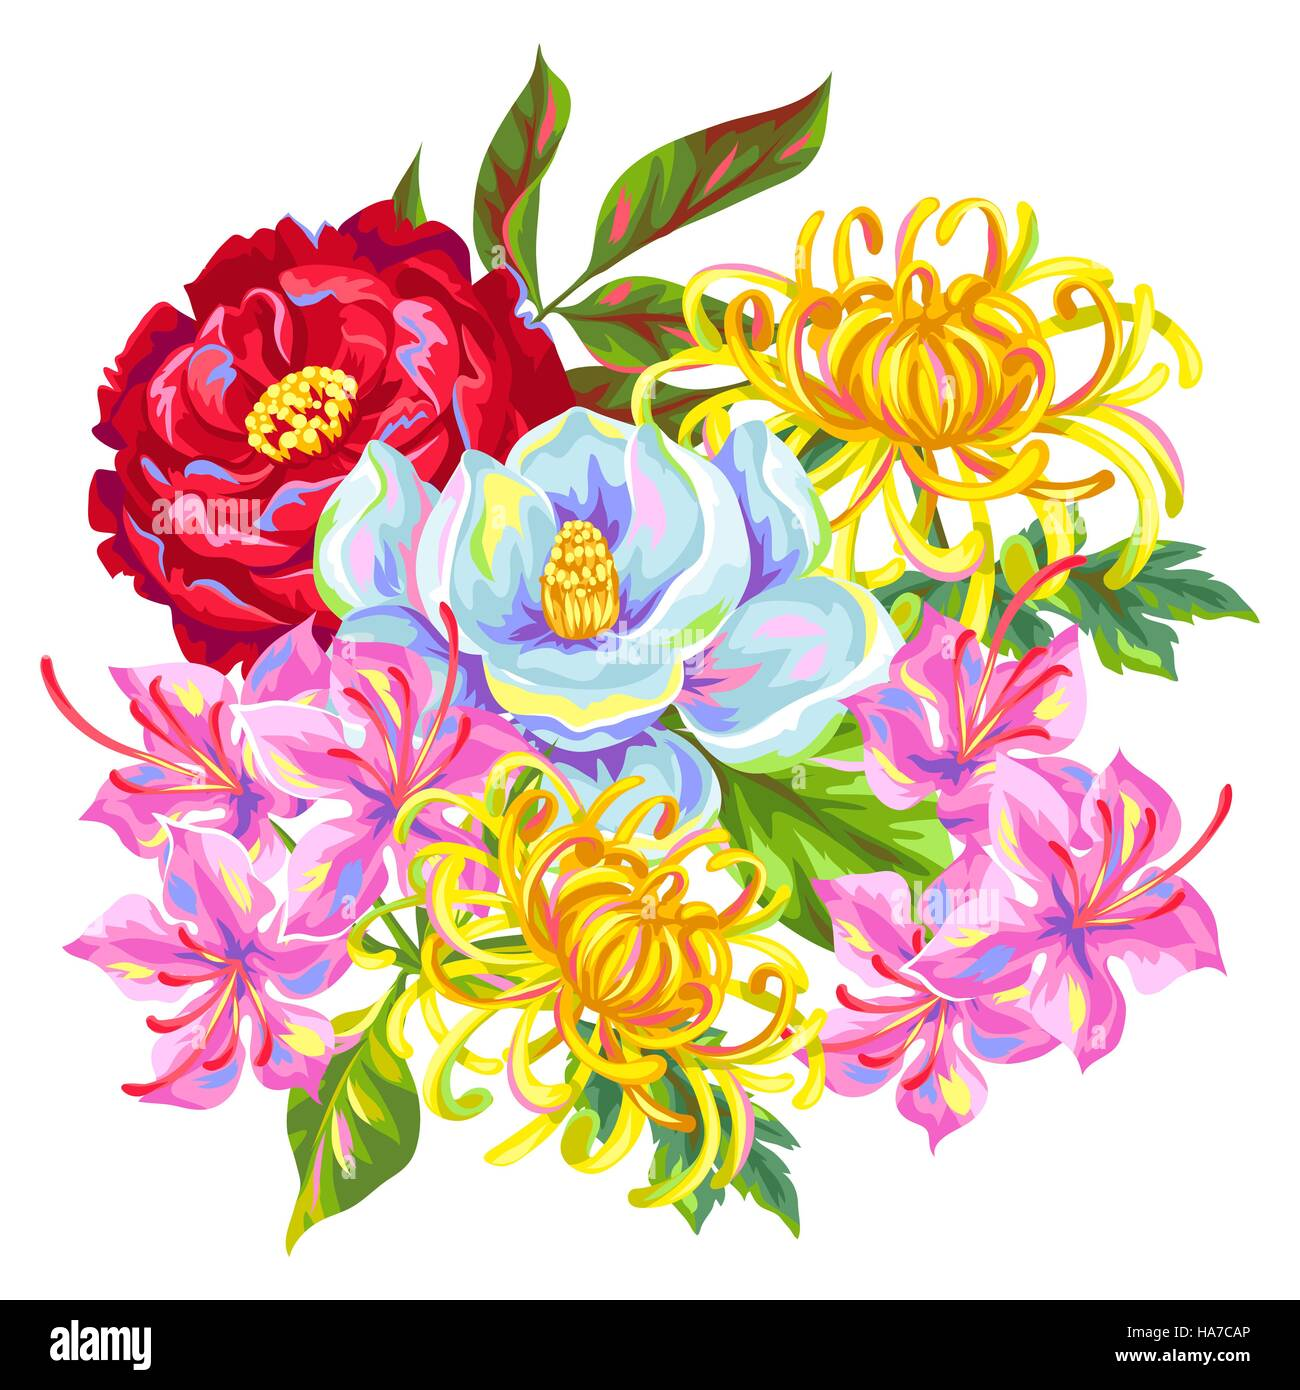 Bouquet with China flowers. Bright buds of magnolia, peony, rhododendron and chrysanthemum - Stock Vector